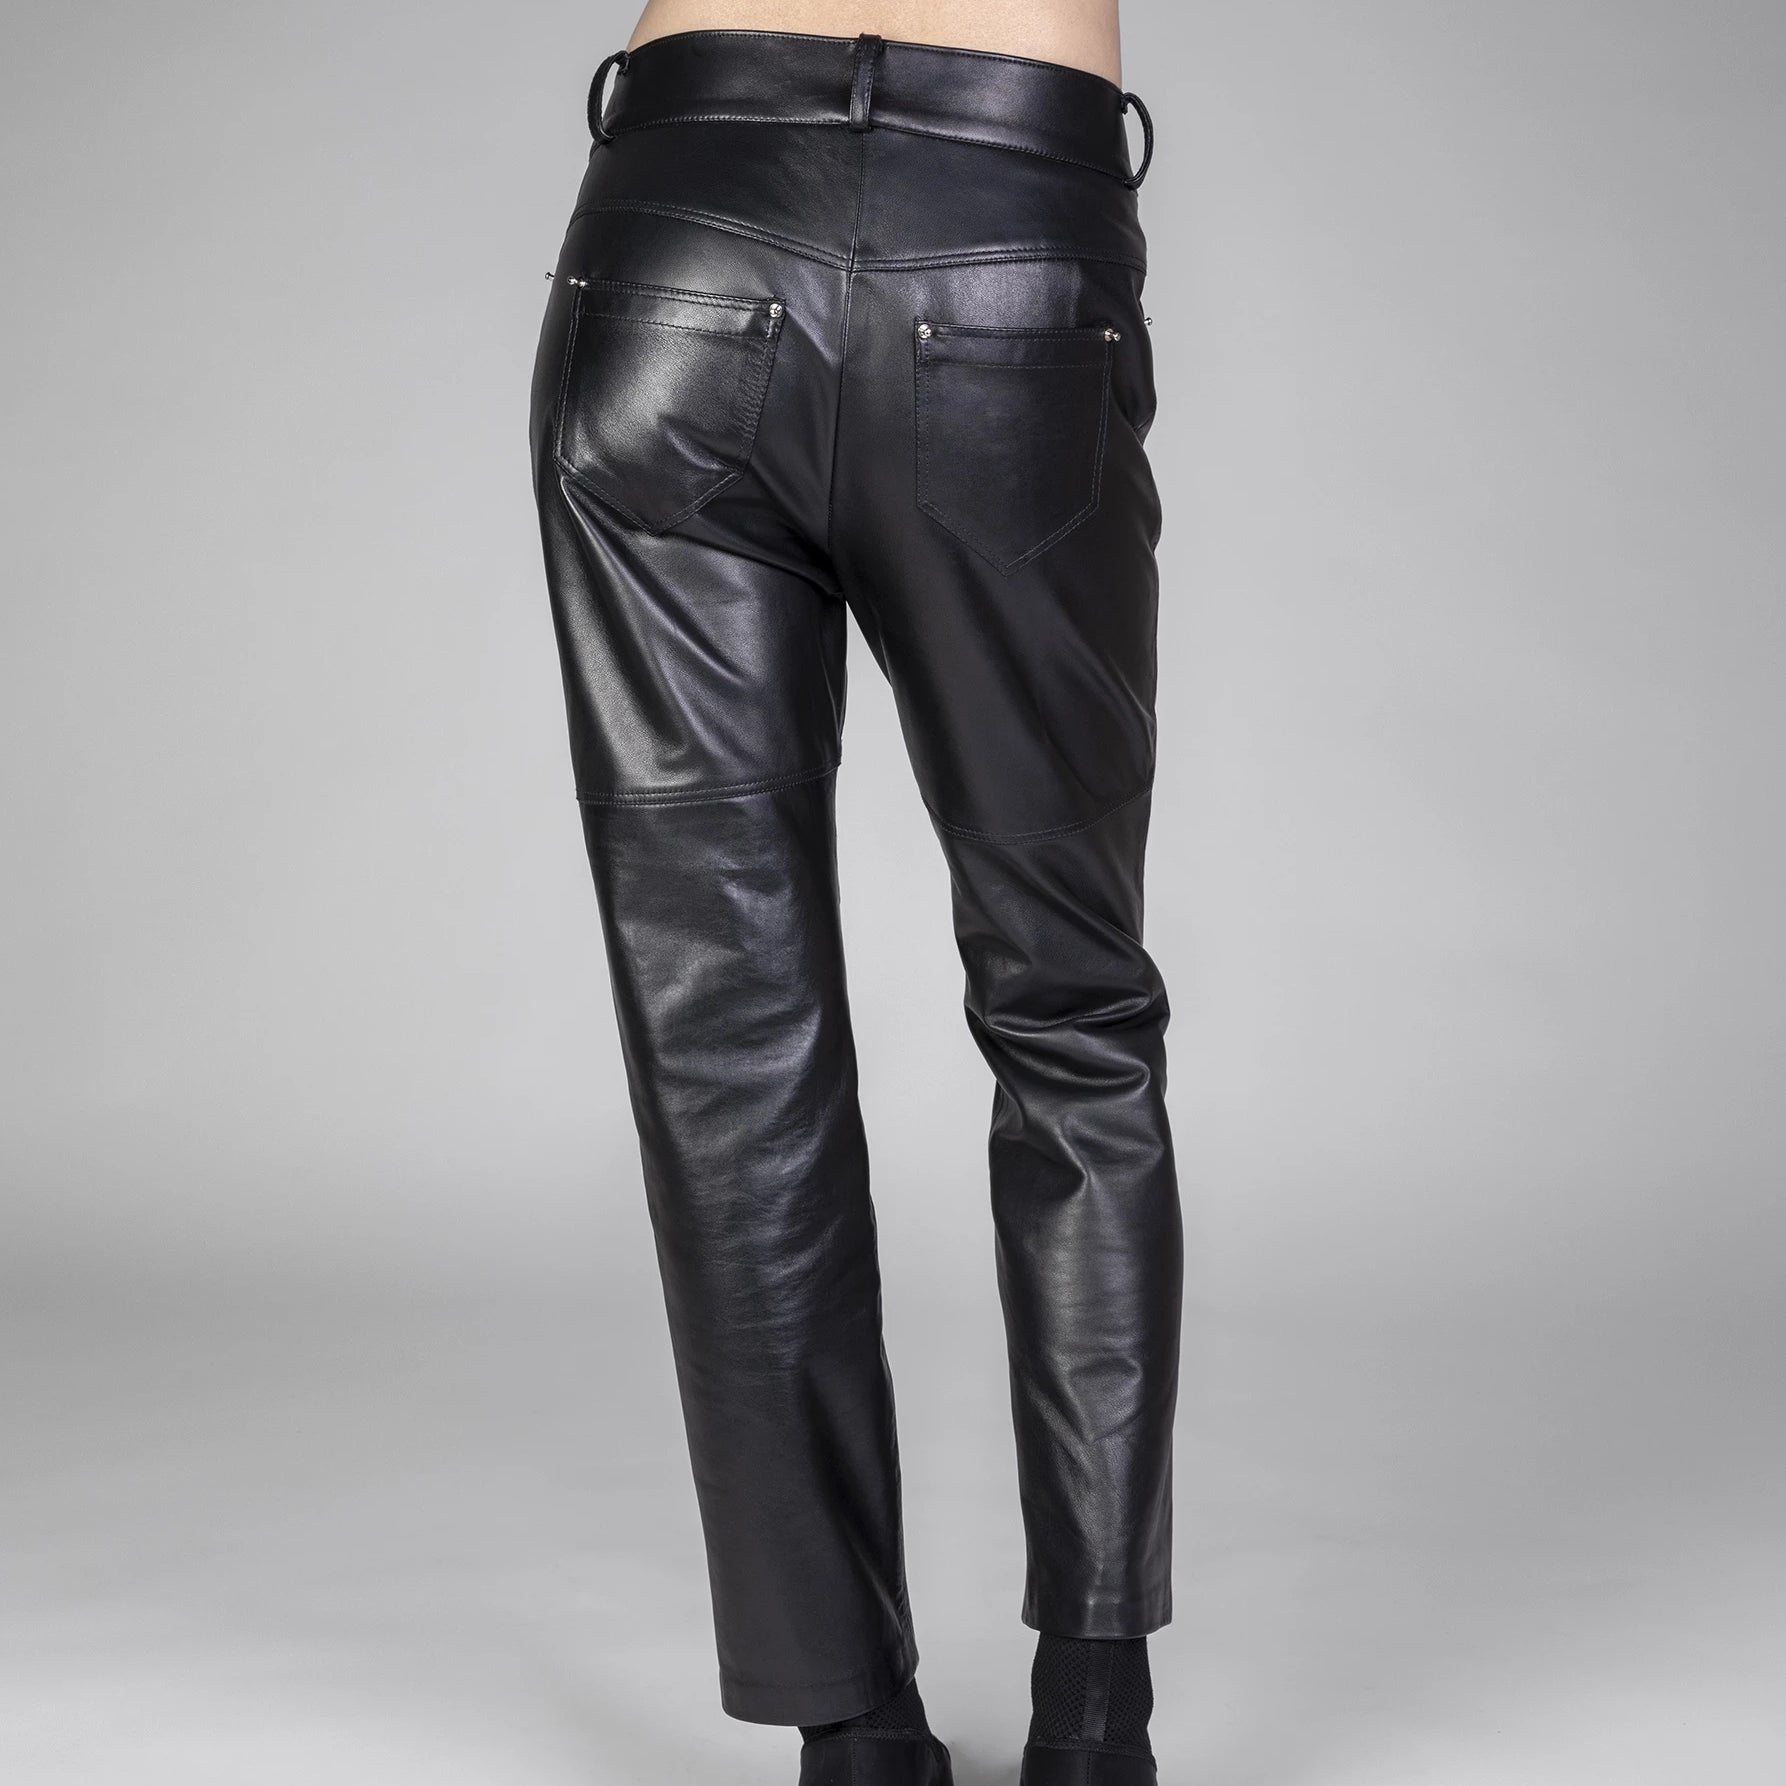 LEATHER BOYFRIEND PANTS